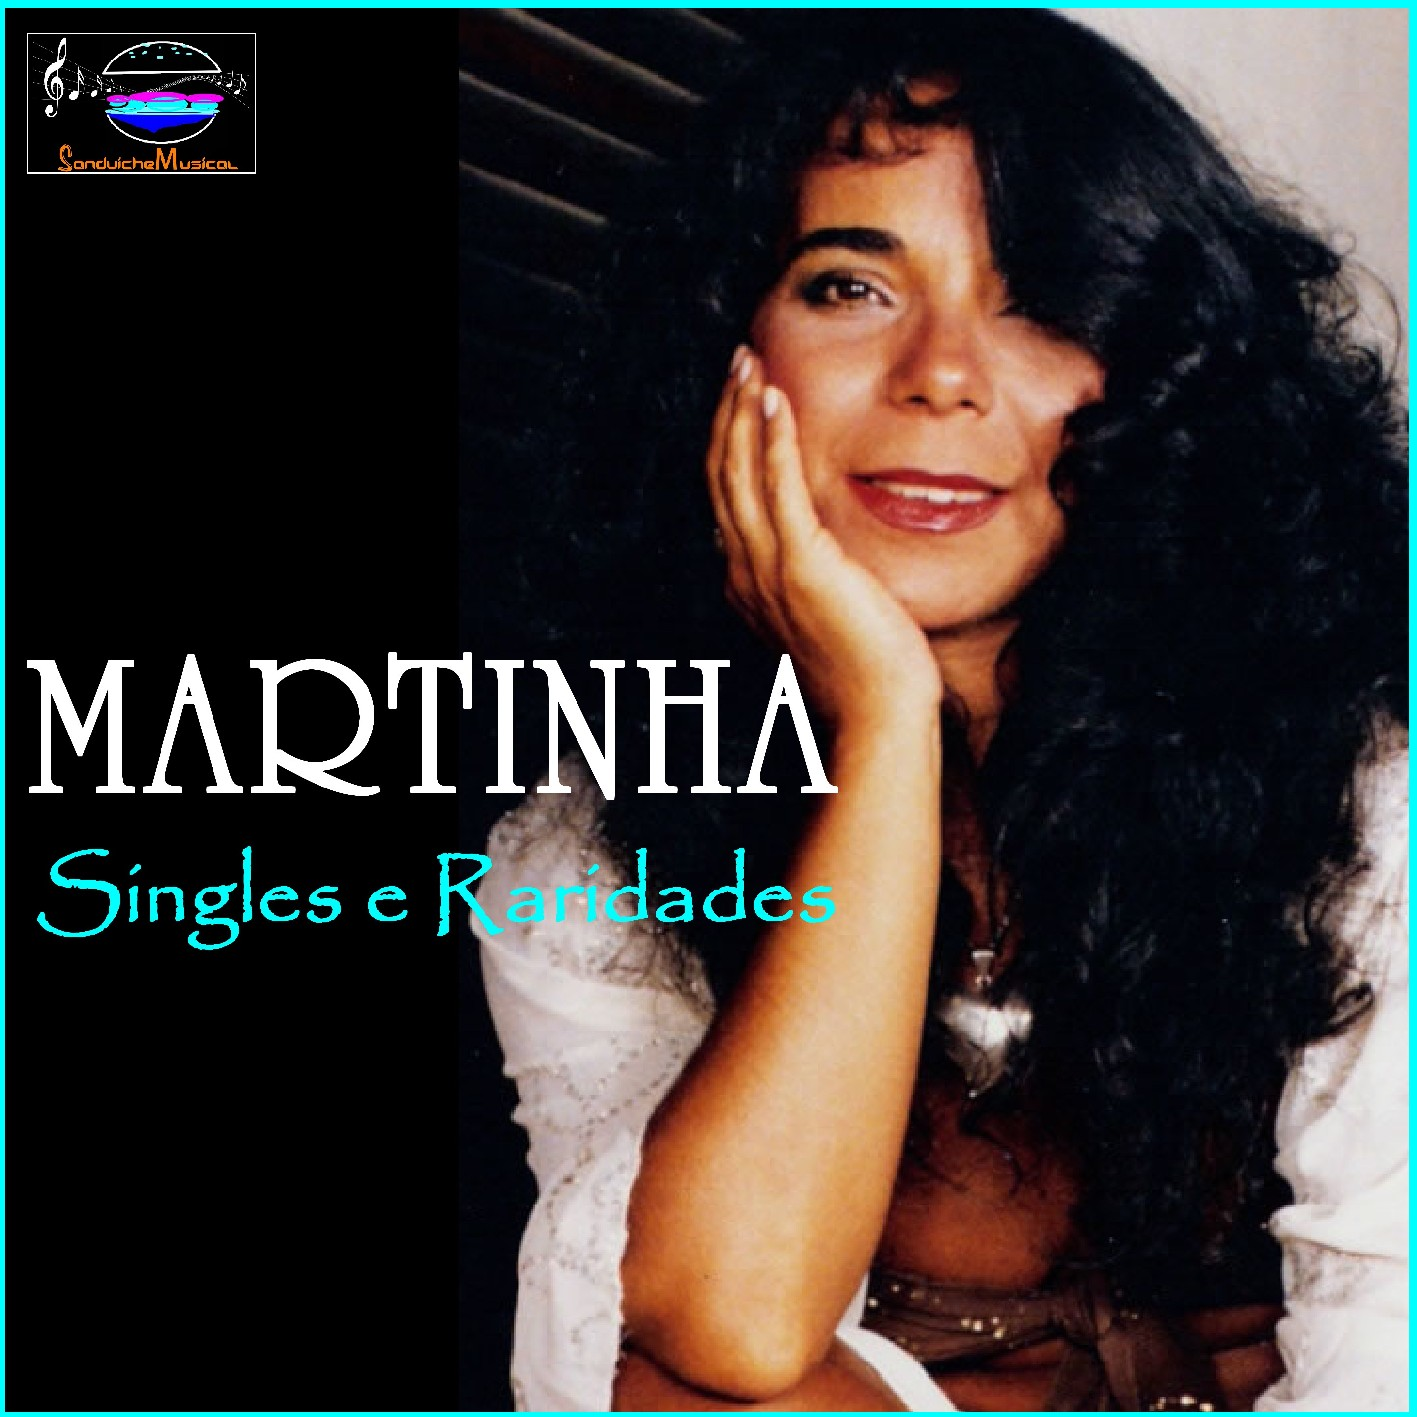 madalena single personals Start a chat with madalena from sao paulo, brazil, 58 years old today she loves most clothes start talking to her on the thai kisses.